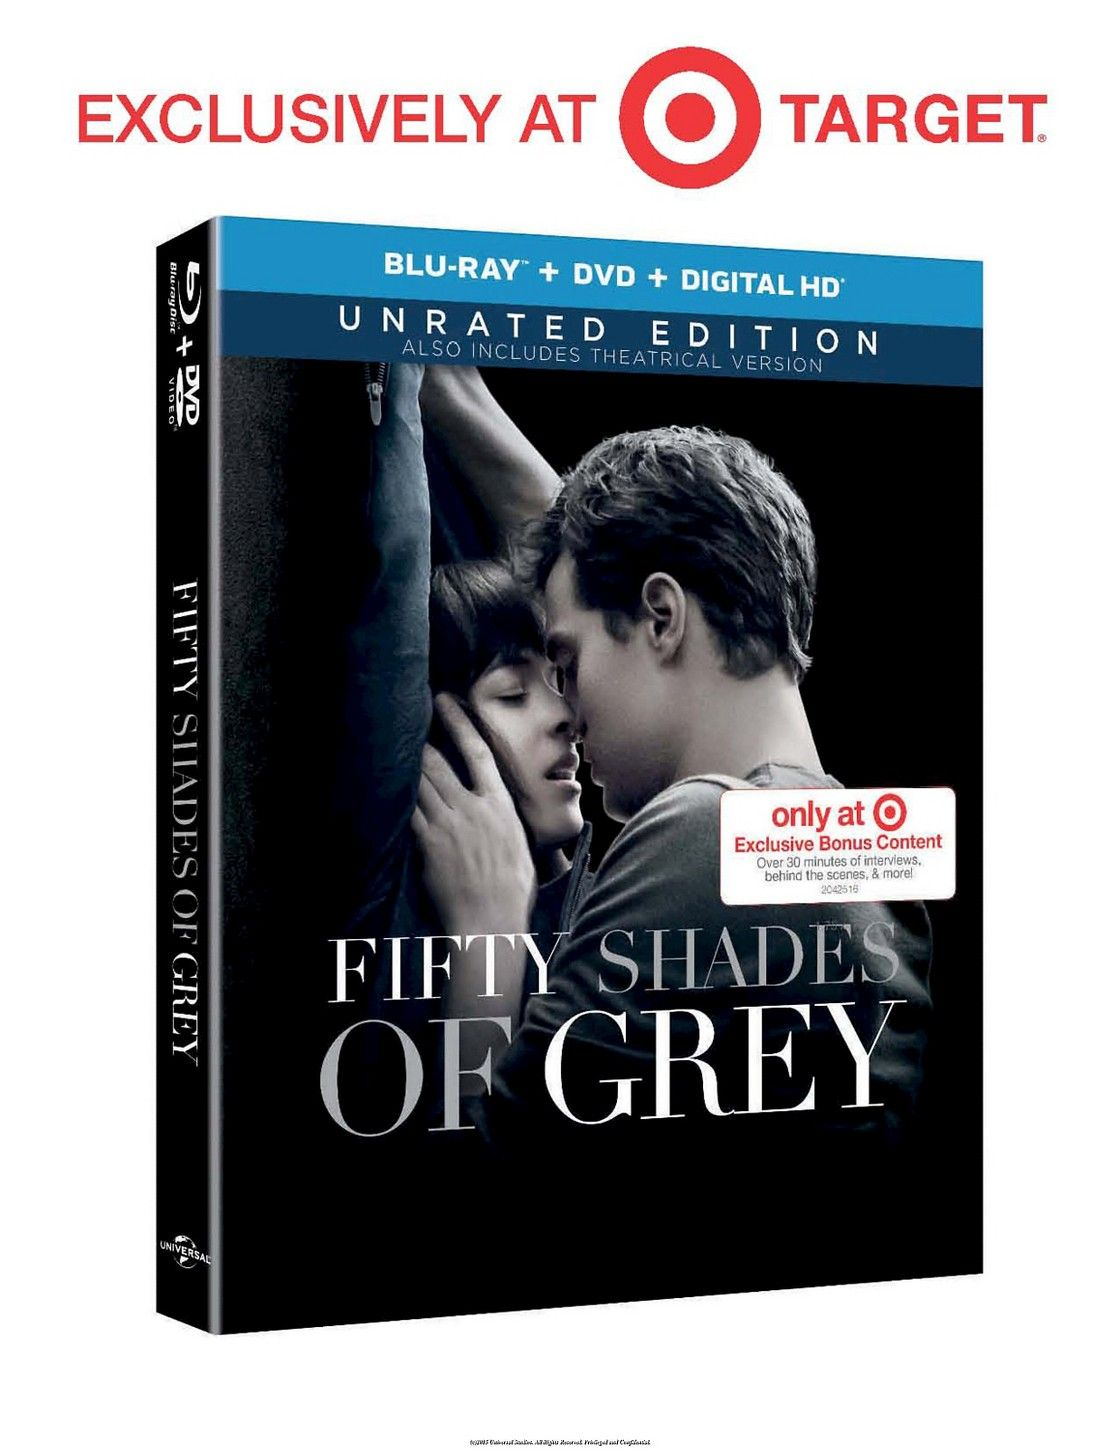 Fifty shades of grey bluraydvd target exclusive